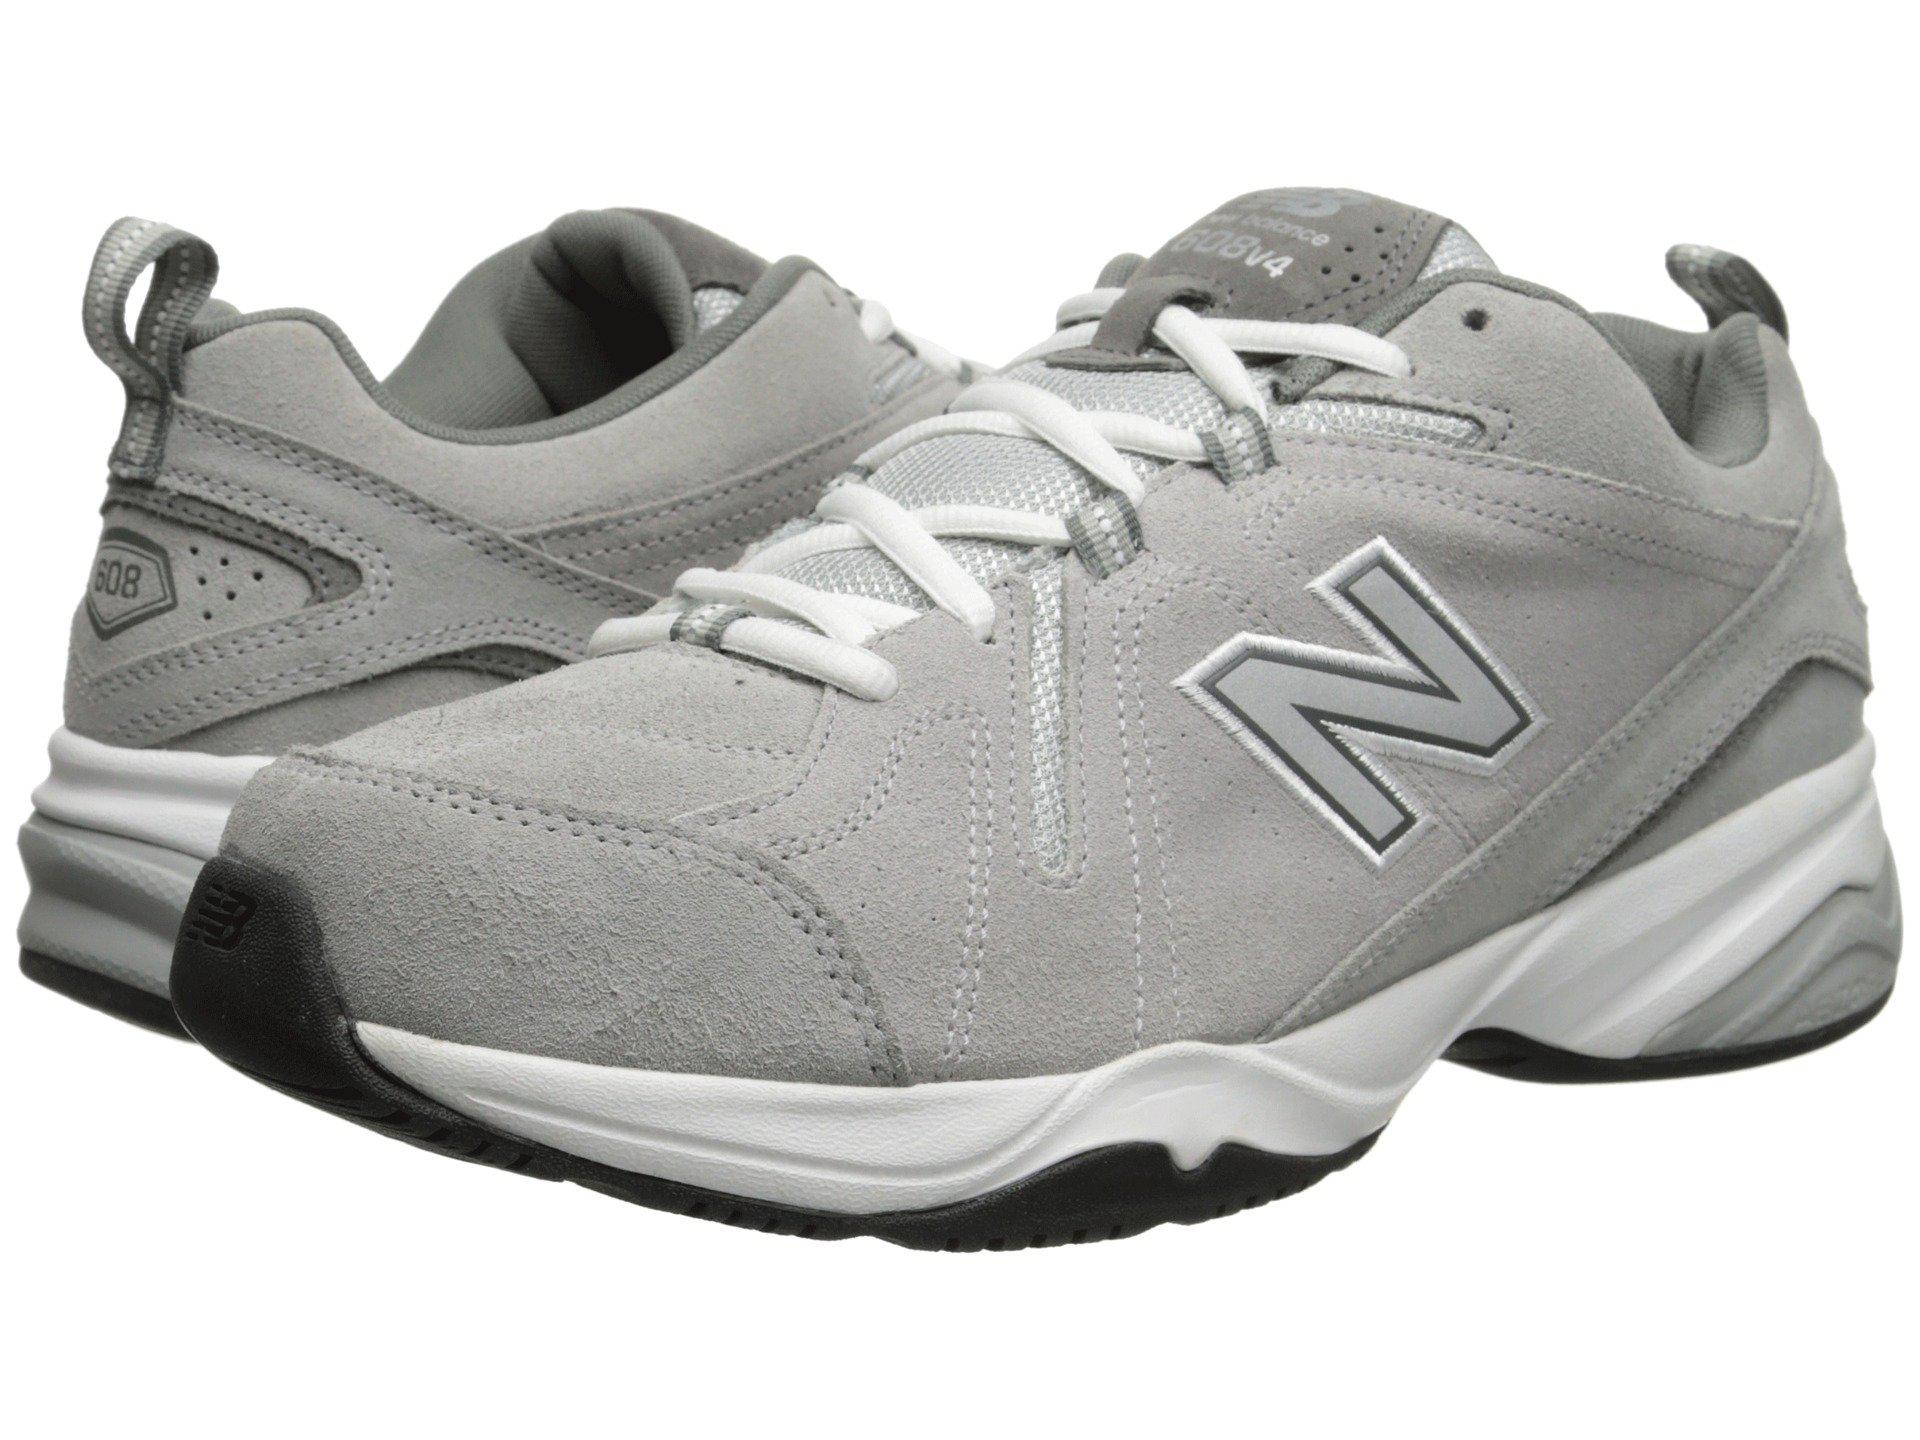 New Balance. Men's Gray Mx608v4